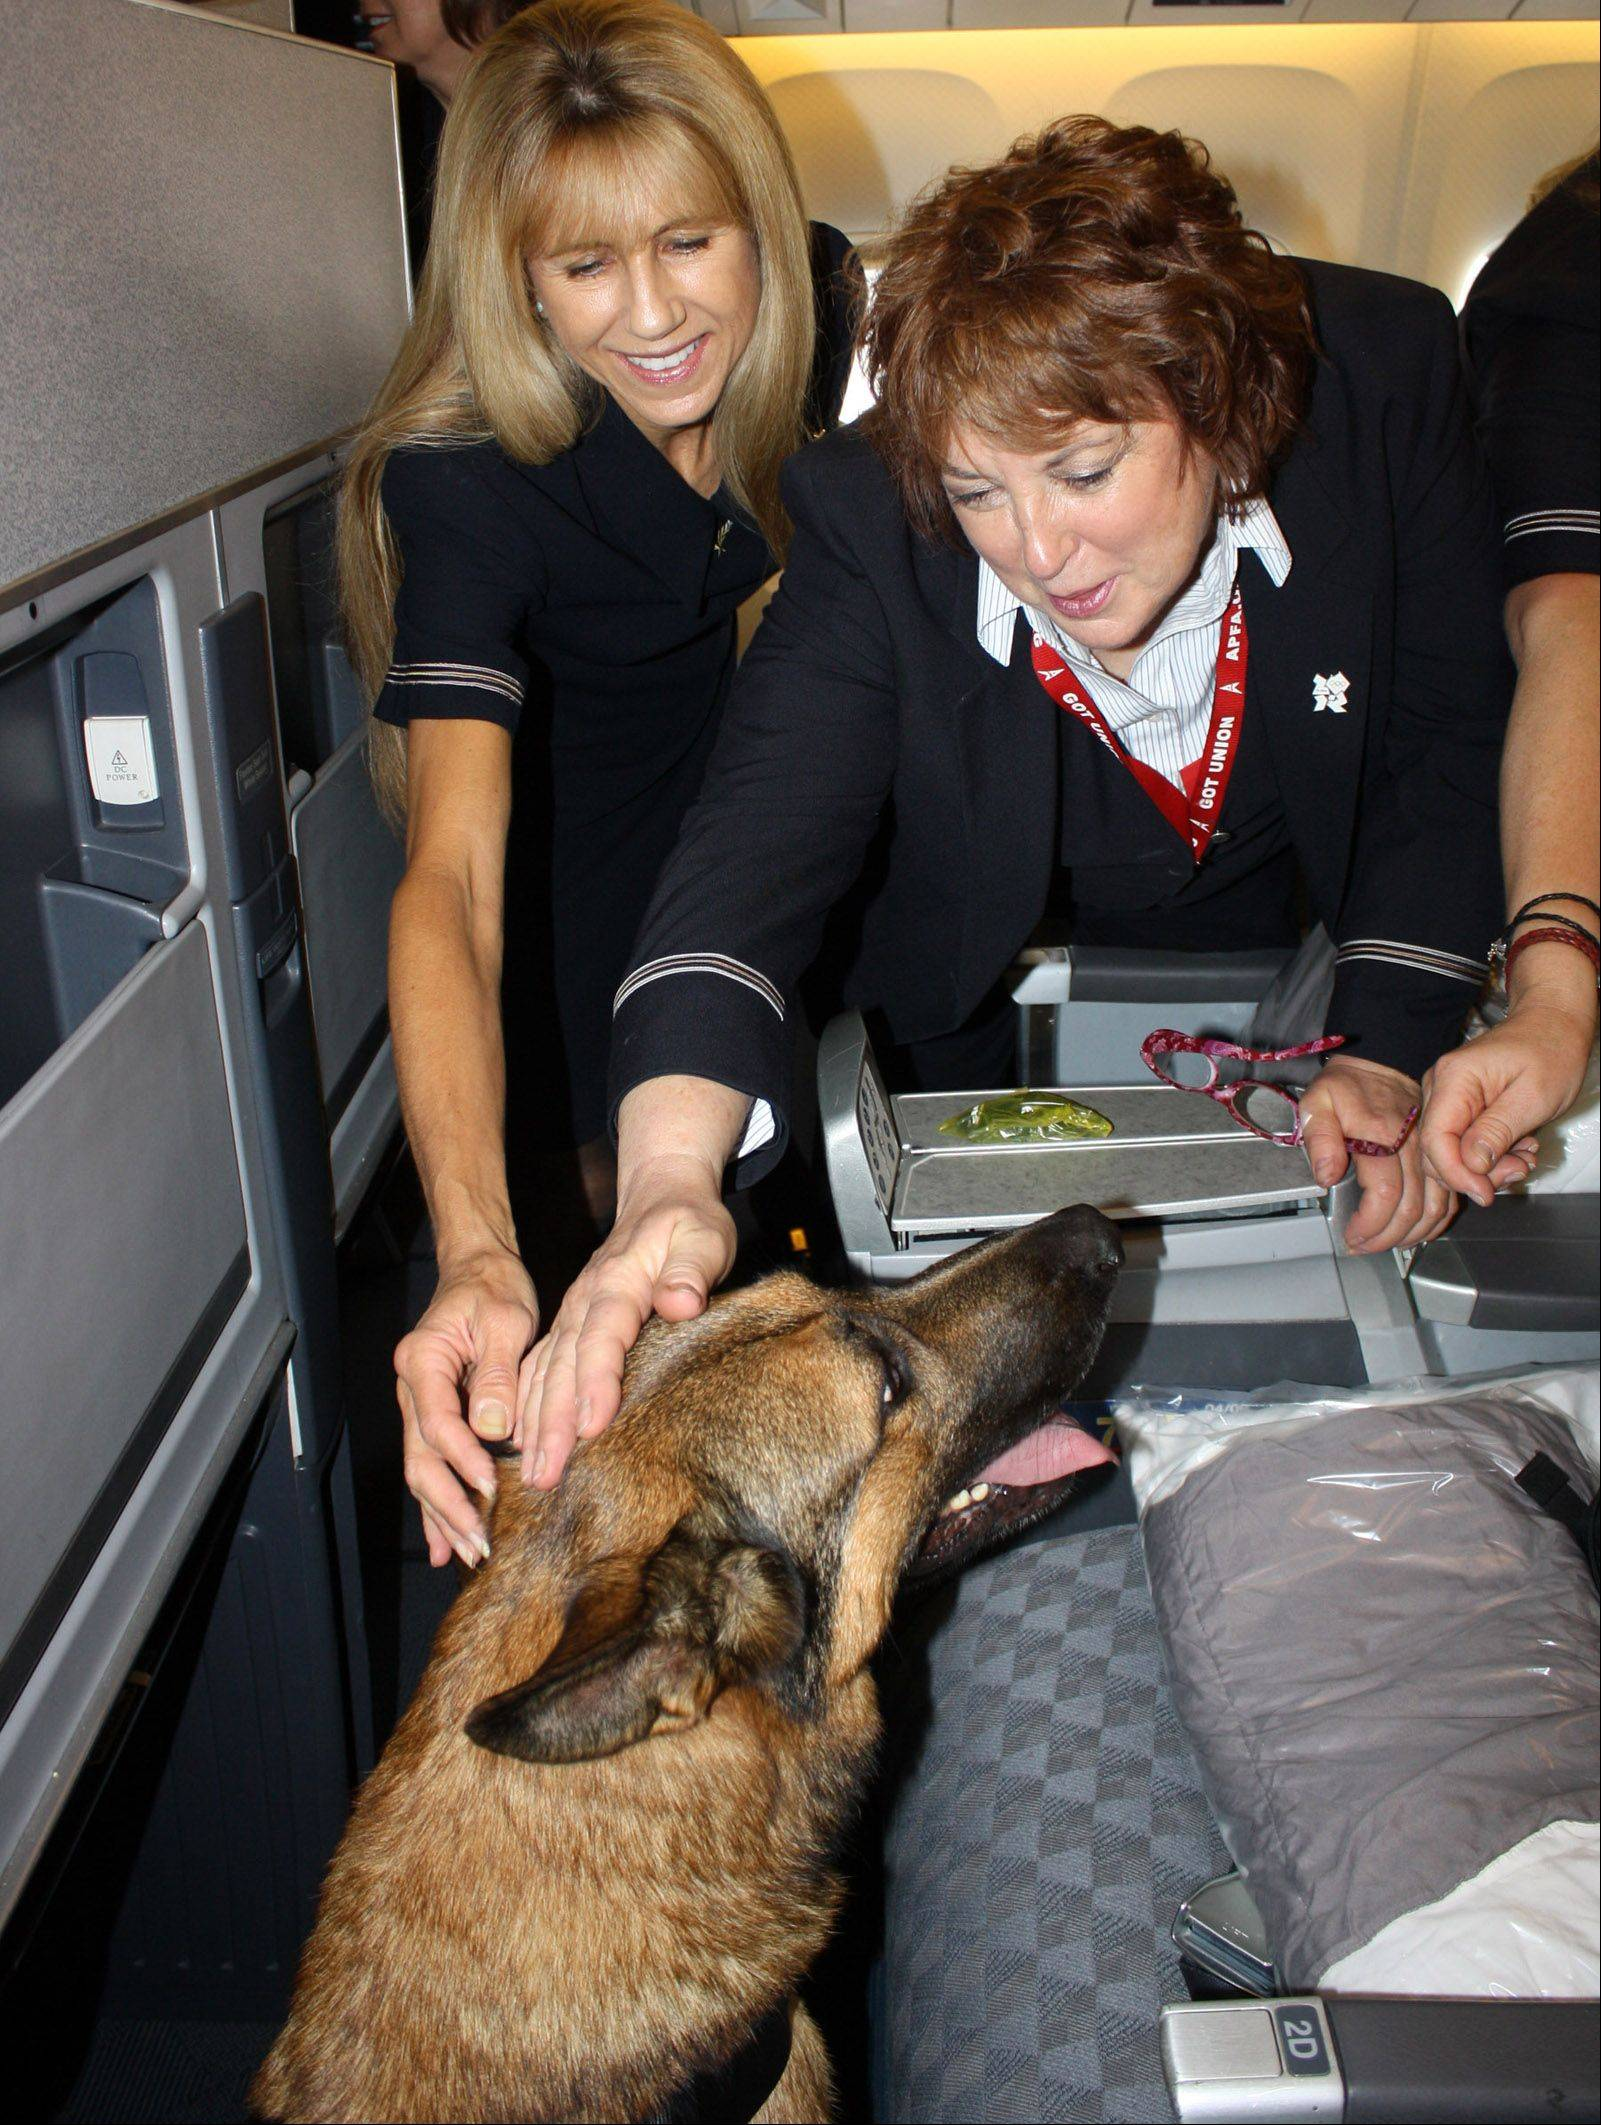 Lucca receives plenty of attention from American Airlines flight attendants at O'Hare International Airport on Thursday.